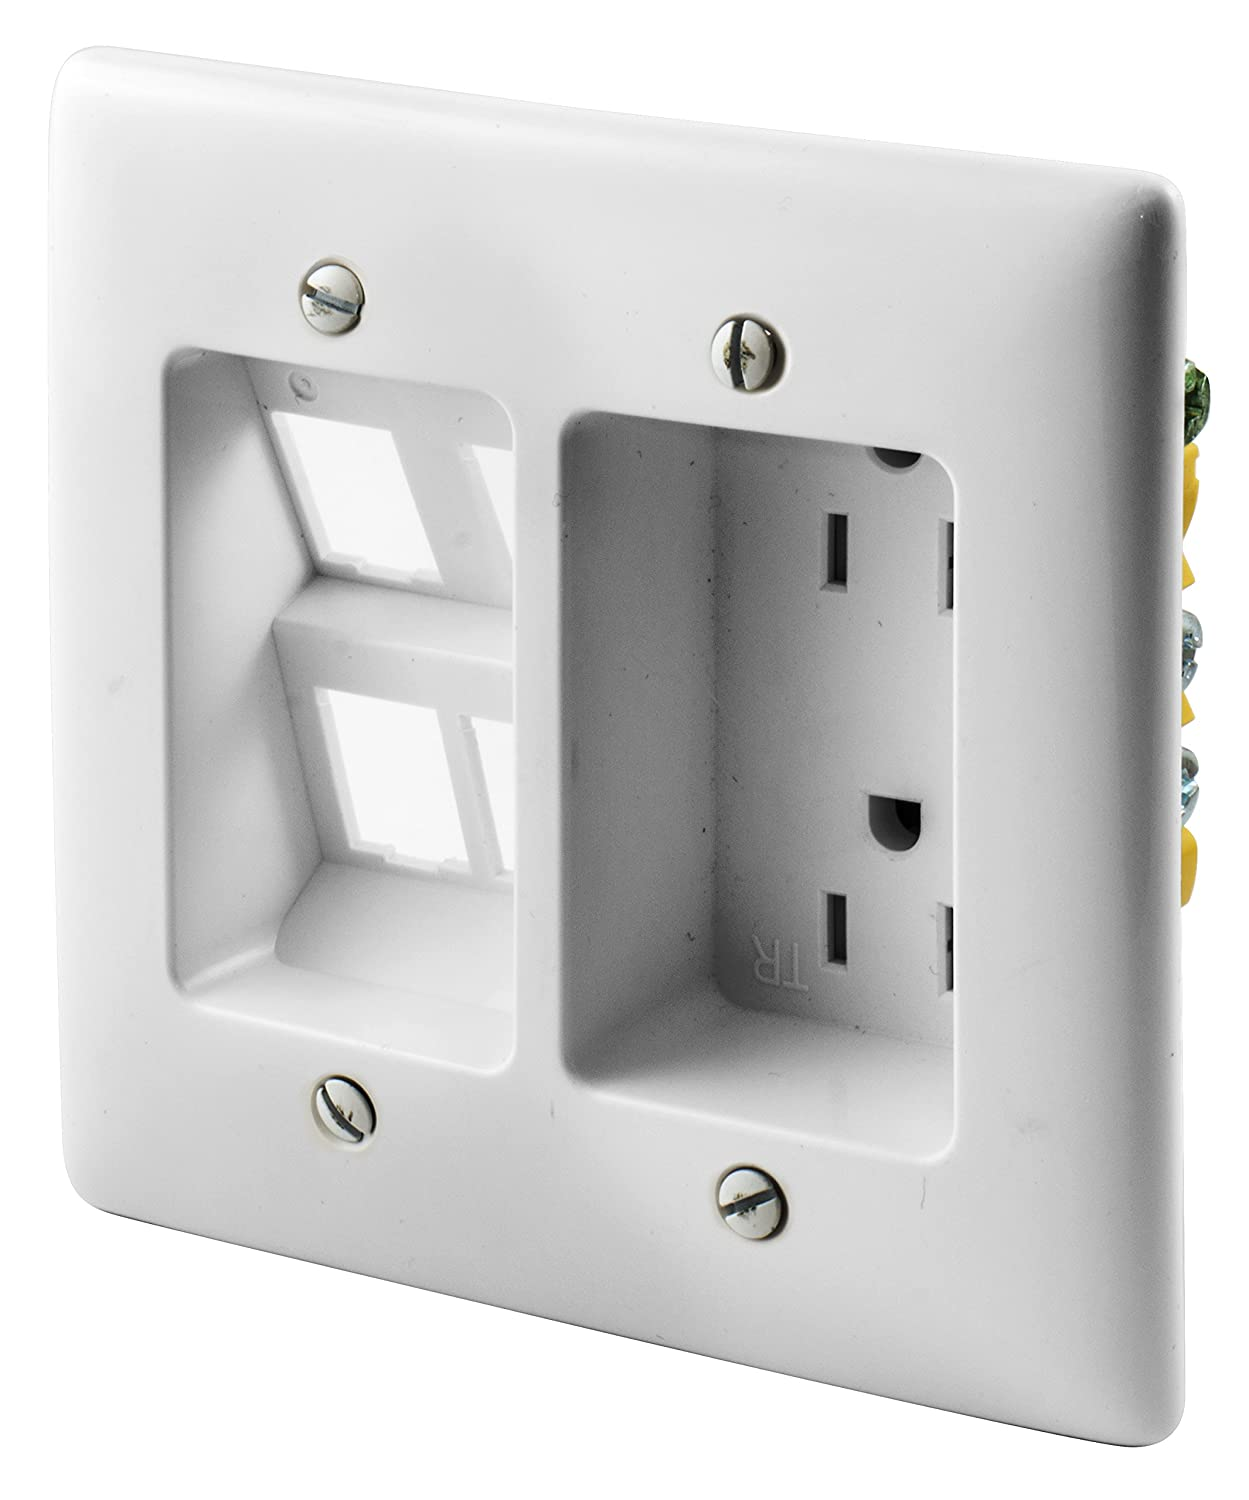 Bryant Electric NSAV1I 1-Gang Box Mount Recessed TV Connection Outlet Plate, Low-Voltage with Cable Pass-Thru, Nylon Wallplate, White